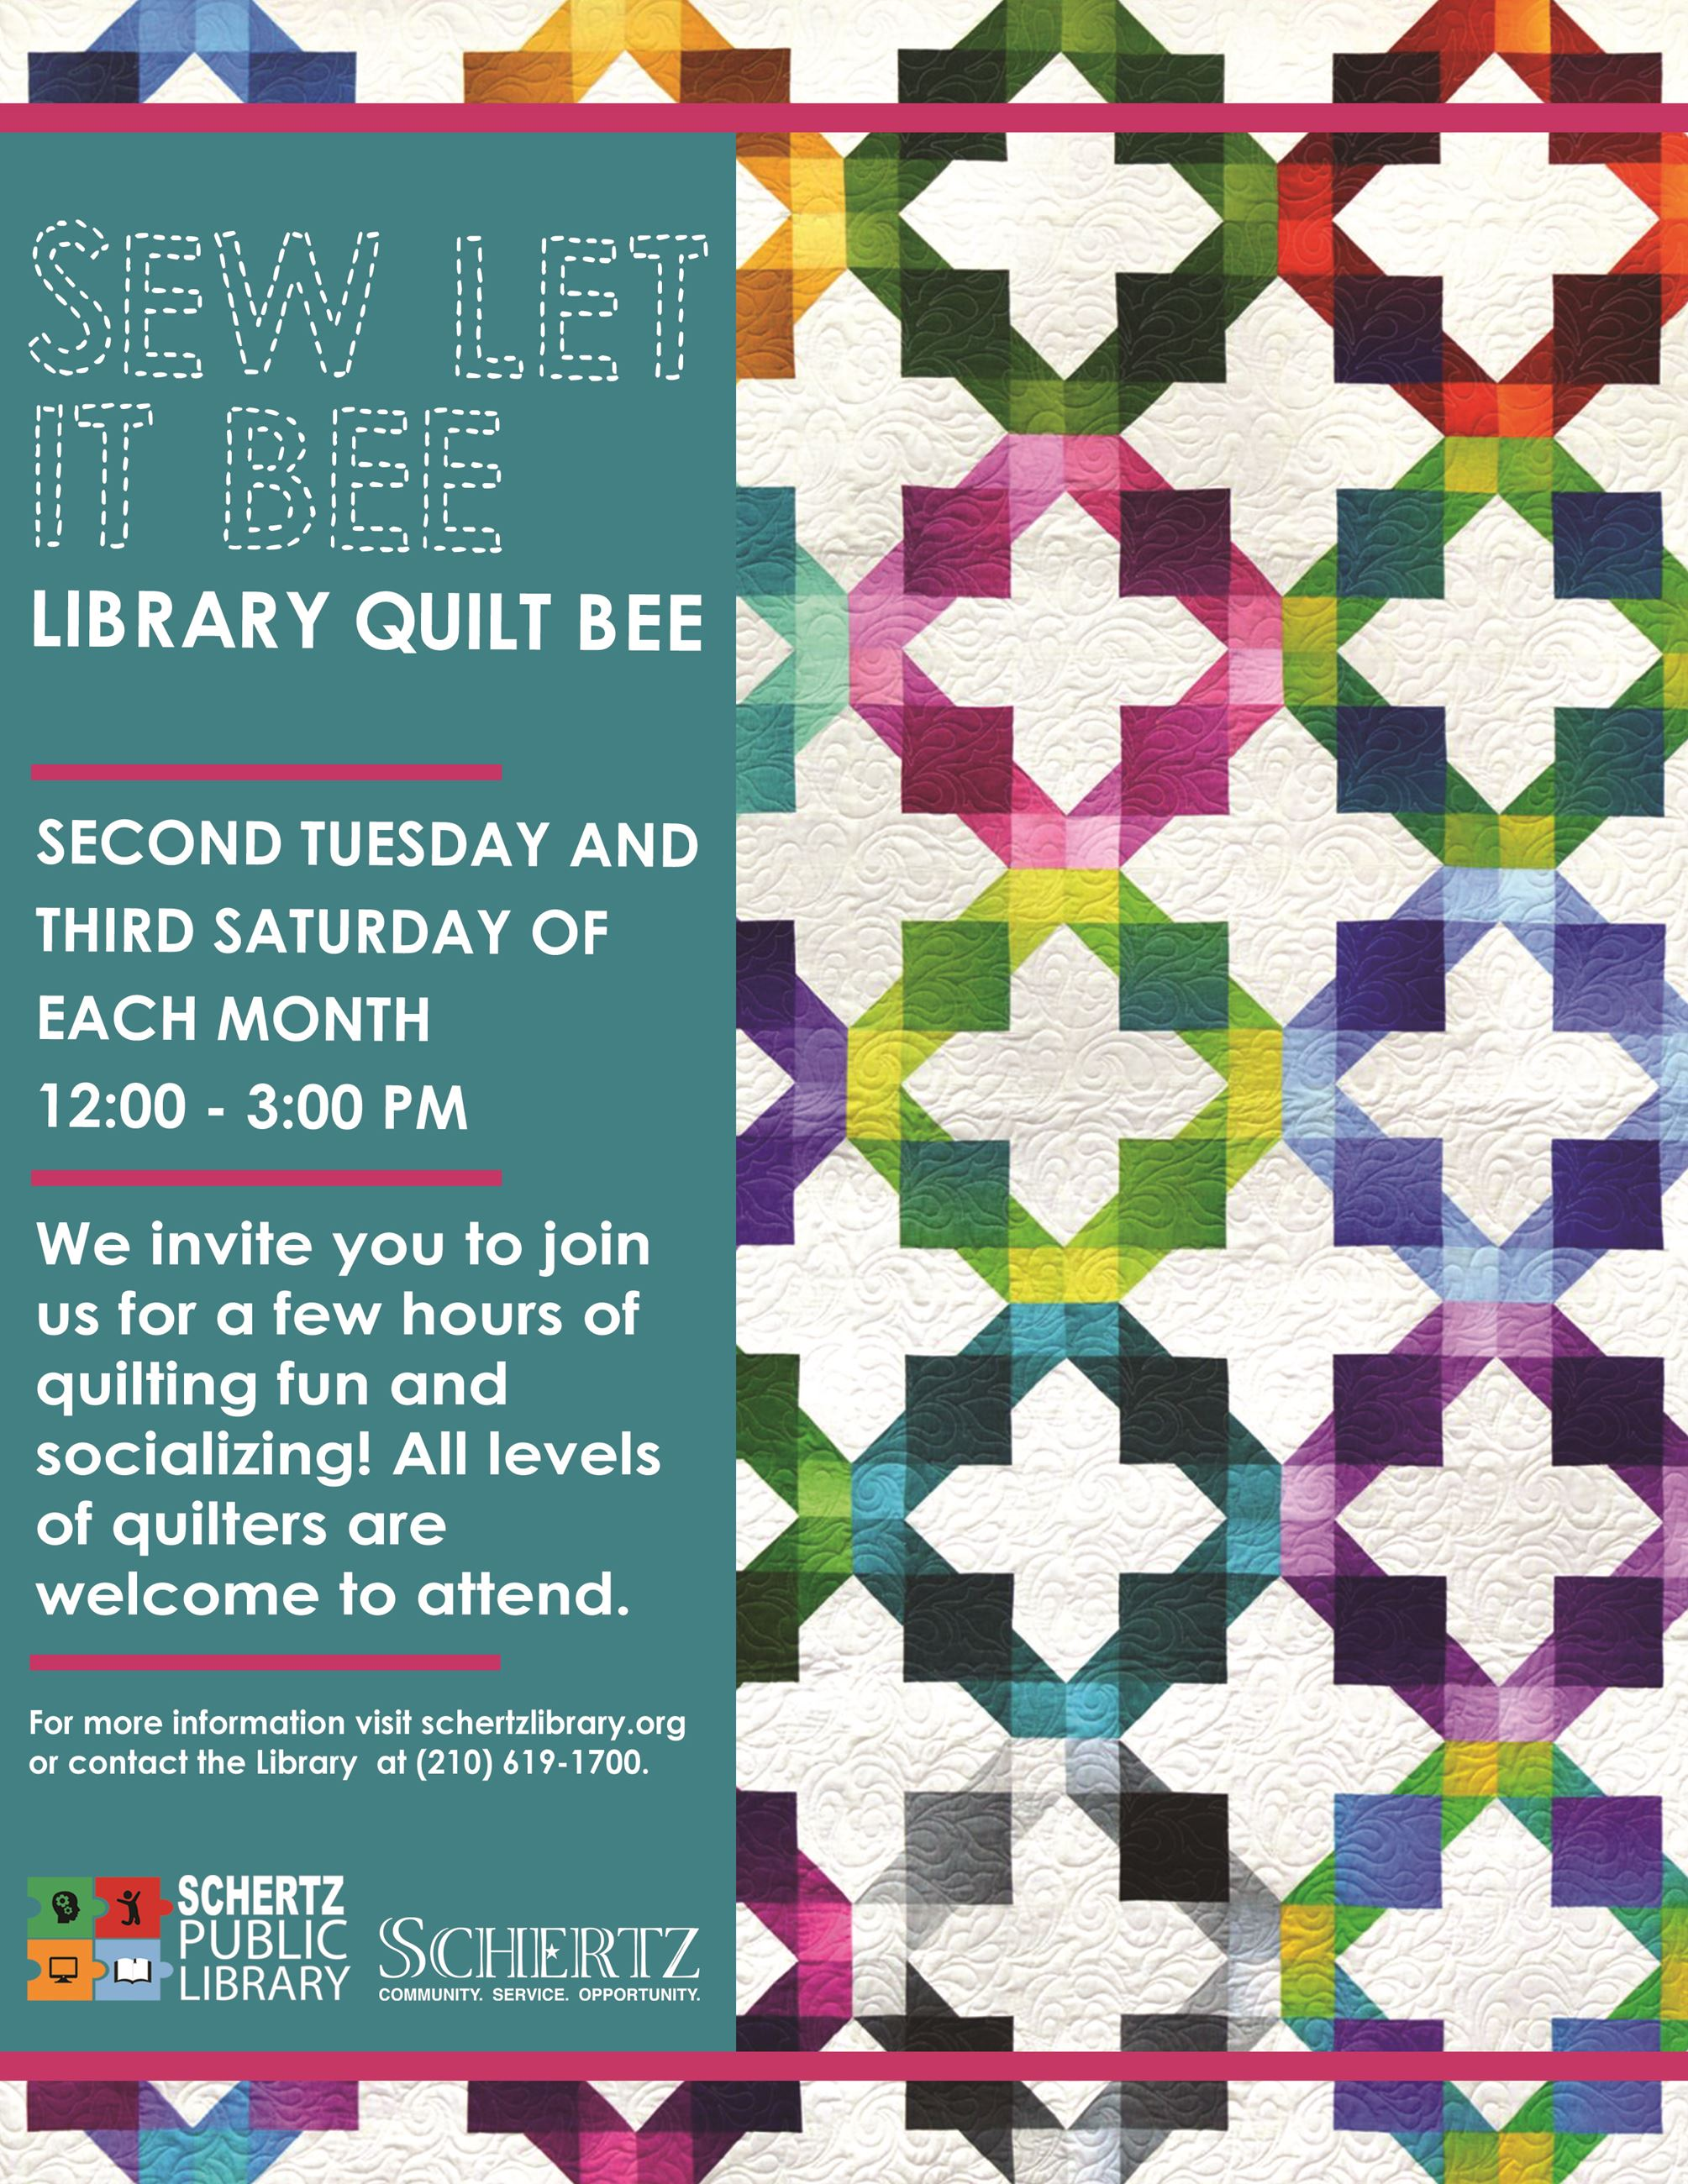 Library Quilt Bee Flyer